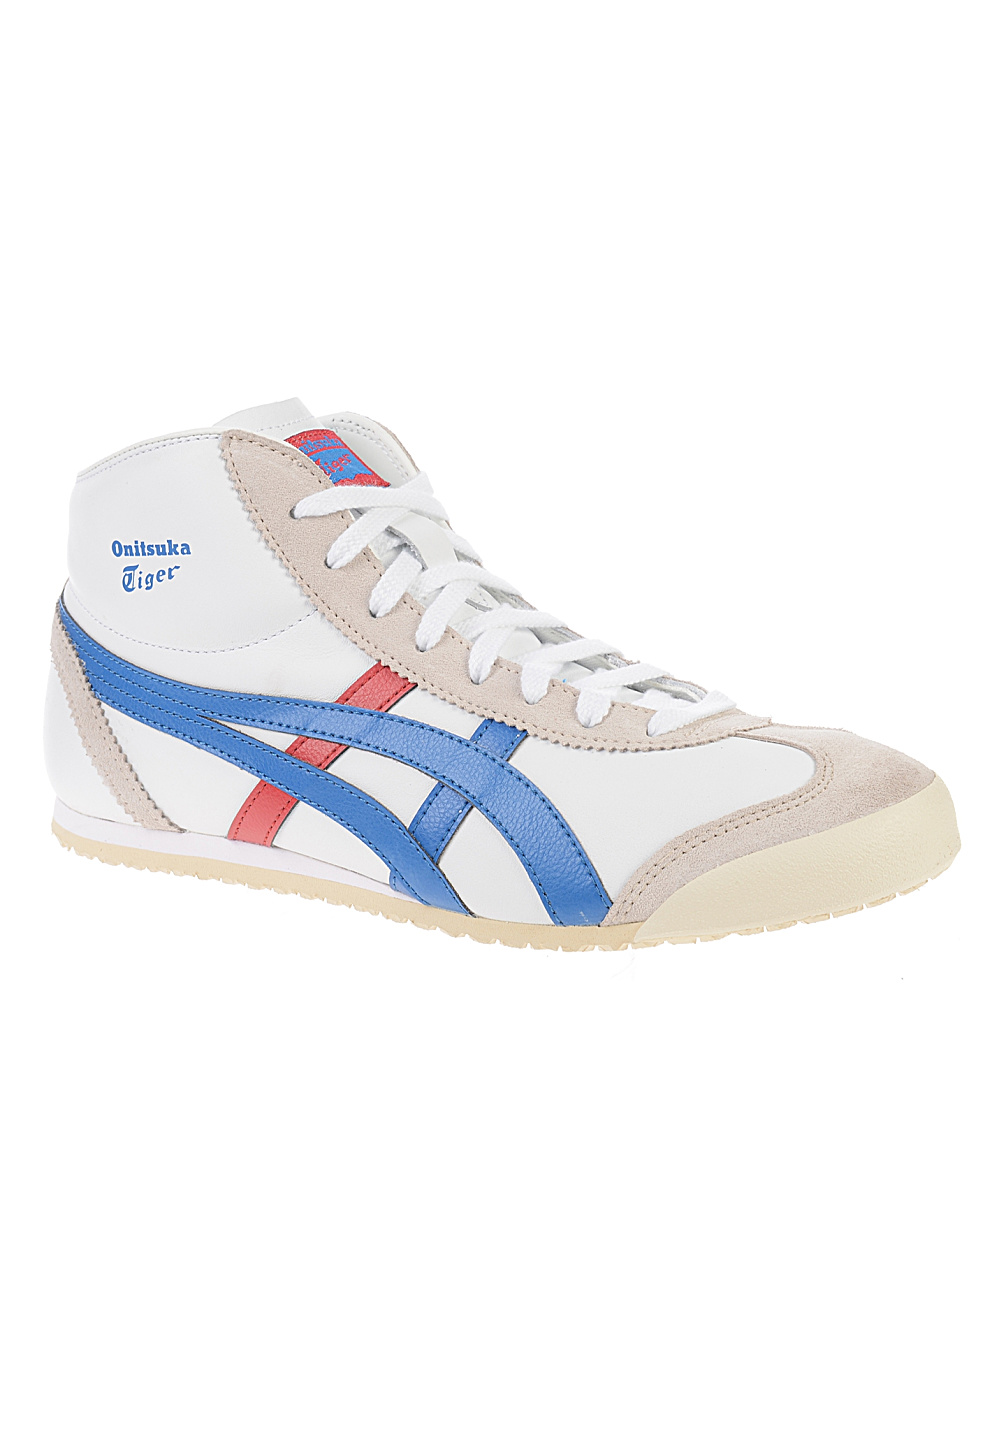 Onitsuka Tiger Mexico Mid Runner Sneaker - Weiß - 38